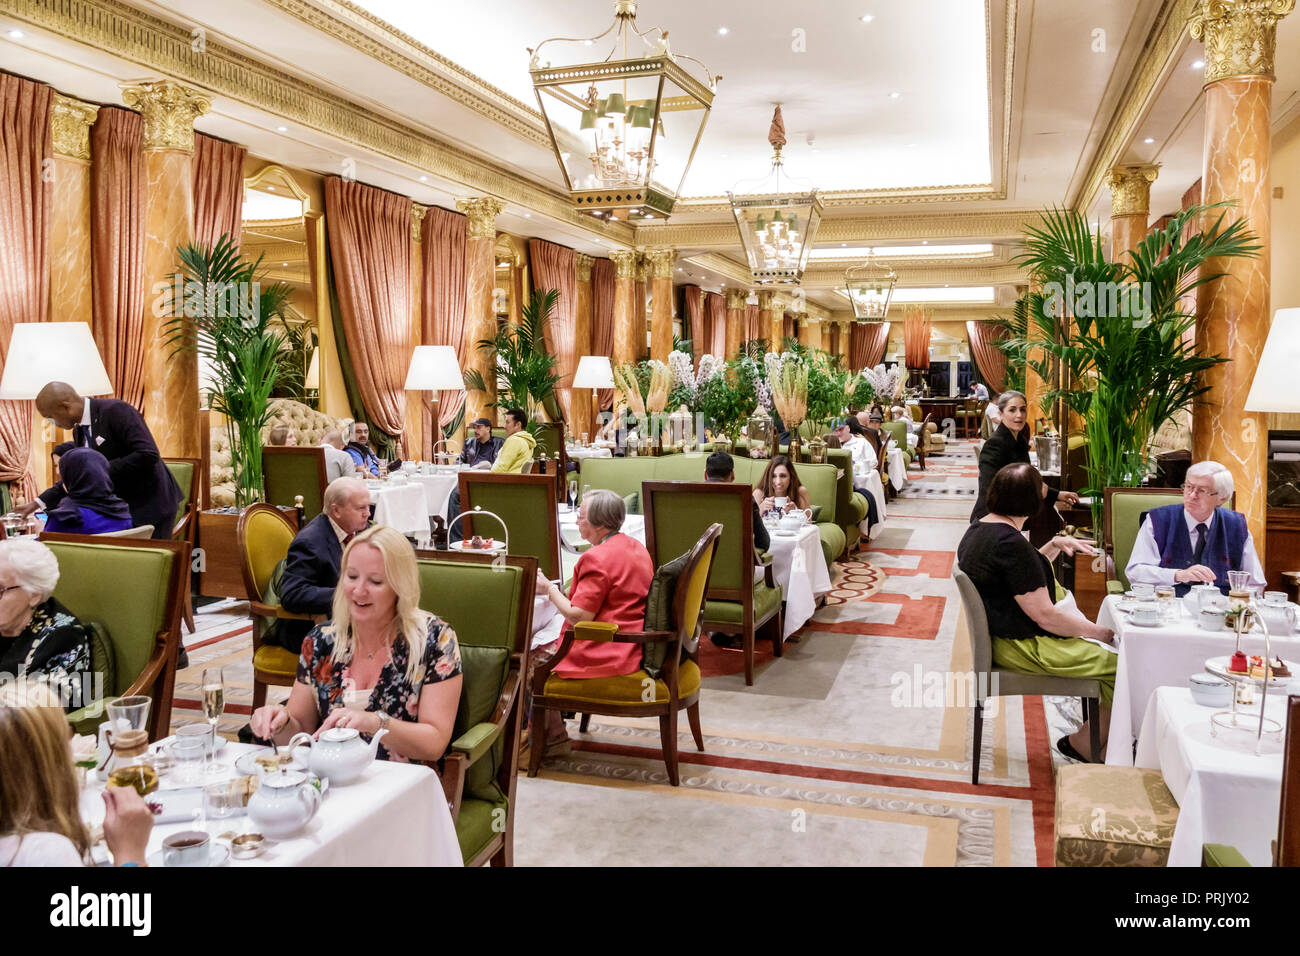 London England United Kingdom Great Britain West End City Westminster Mayfair Park Lane The Dorchester hotel luxury 5-star The Promenade restaurant af - Stock Image